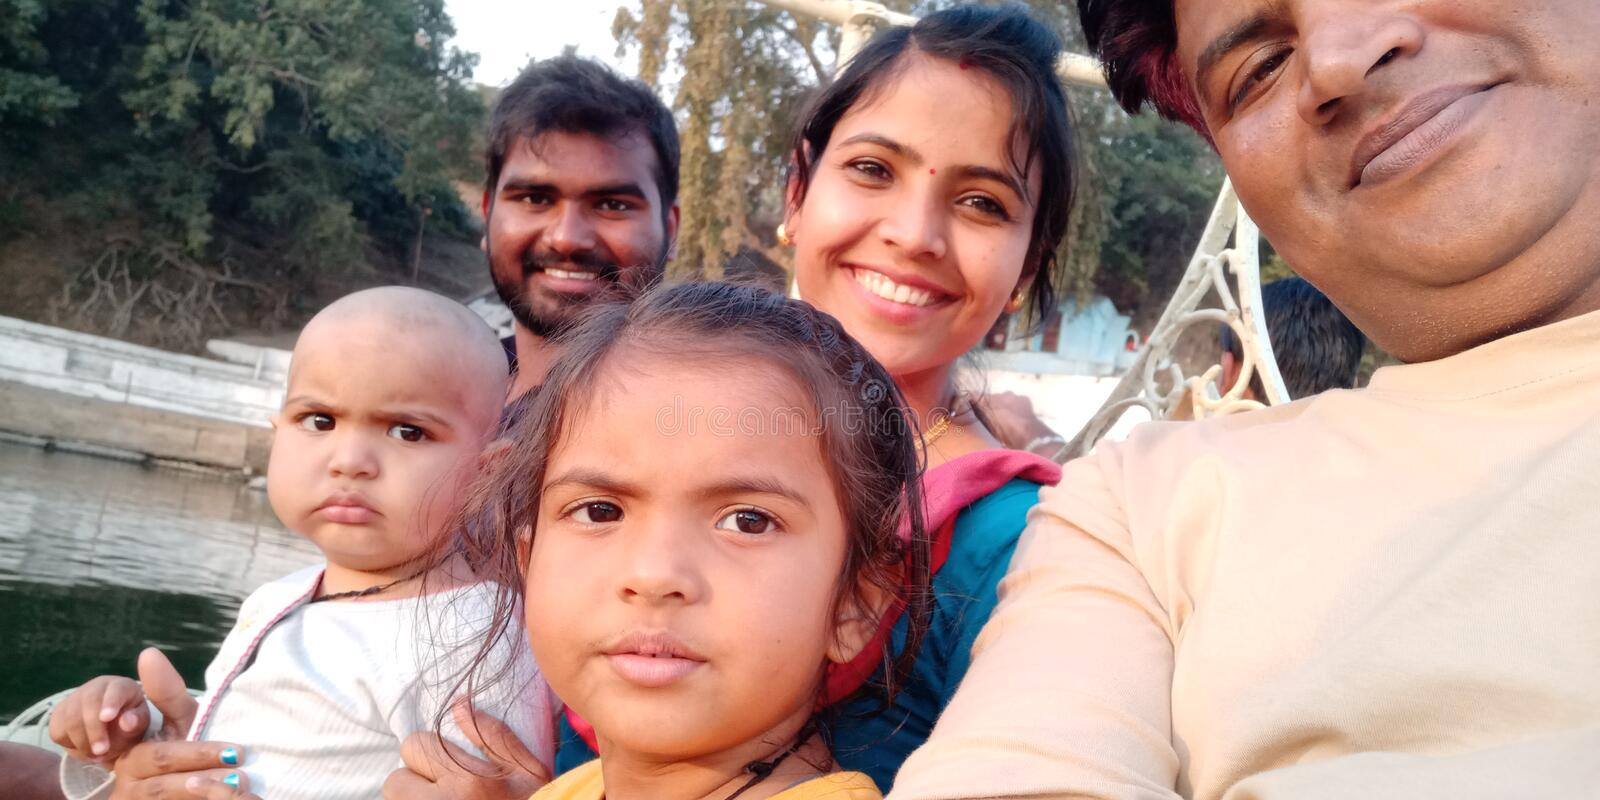 Happy family with smile of india. Street port-rate,family on street, use for backgrounds, paintings, book covers for history etc stock image